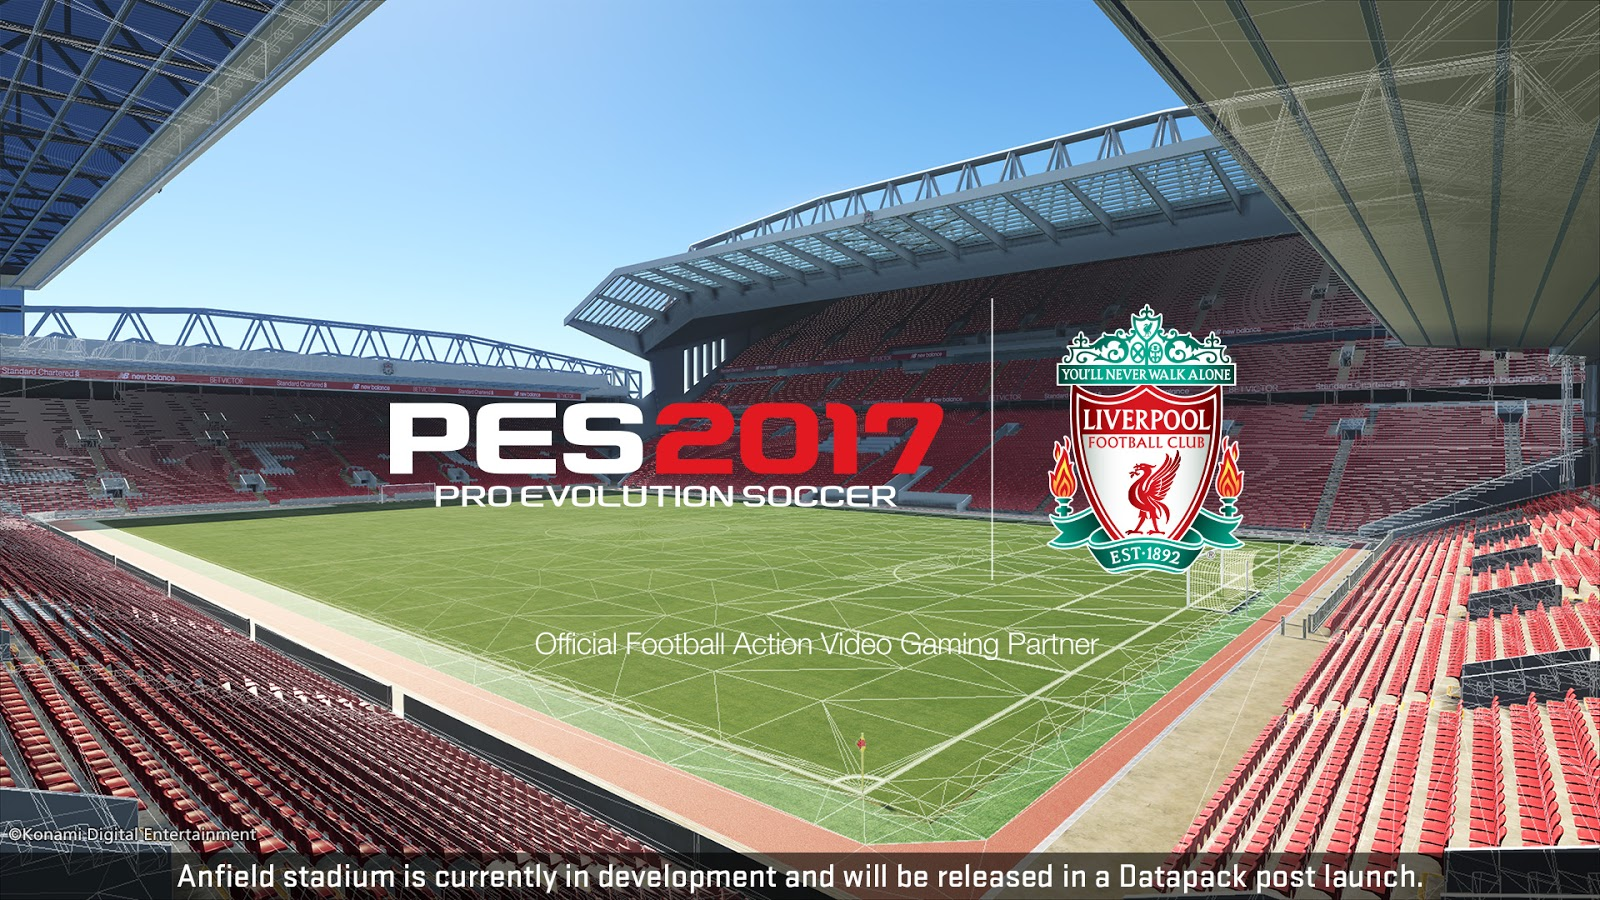 PES2017-LFC-Announcement-Anfield-02.jpg